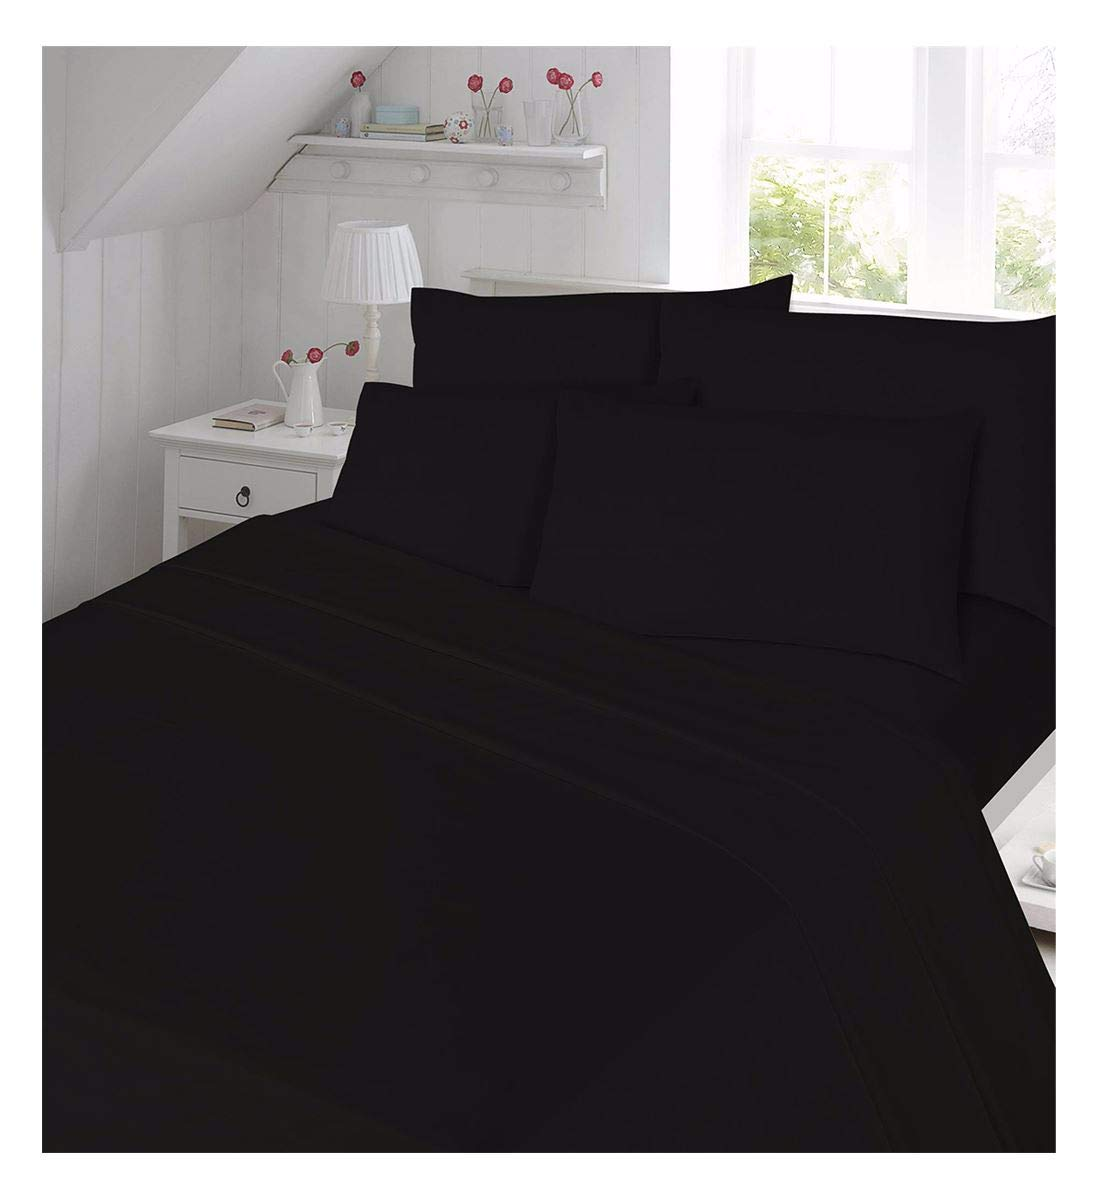 Rimi Hanger Luxury Thermal Flannelette Flat Sheet Cotton Bedding Sheet and Pillowcase Set Black Double Size